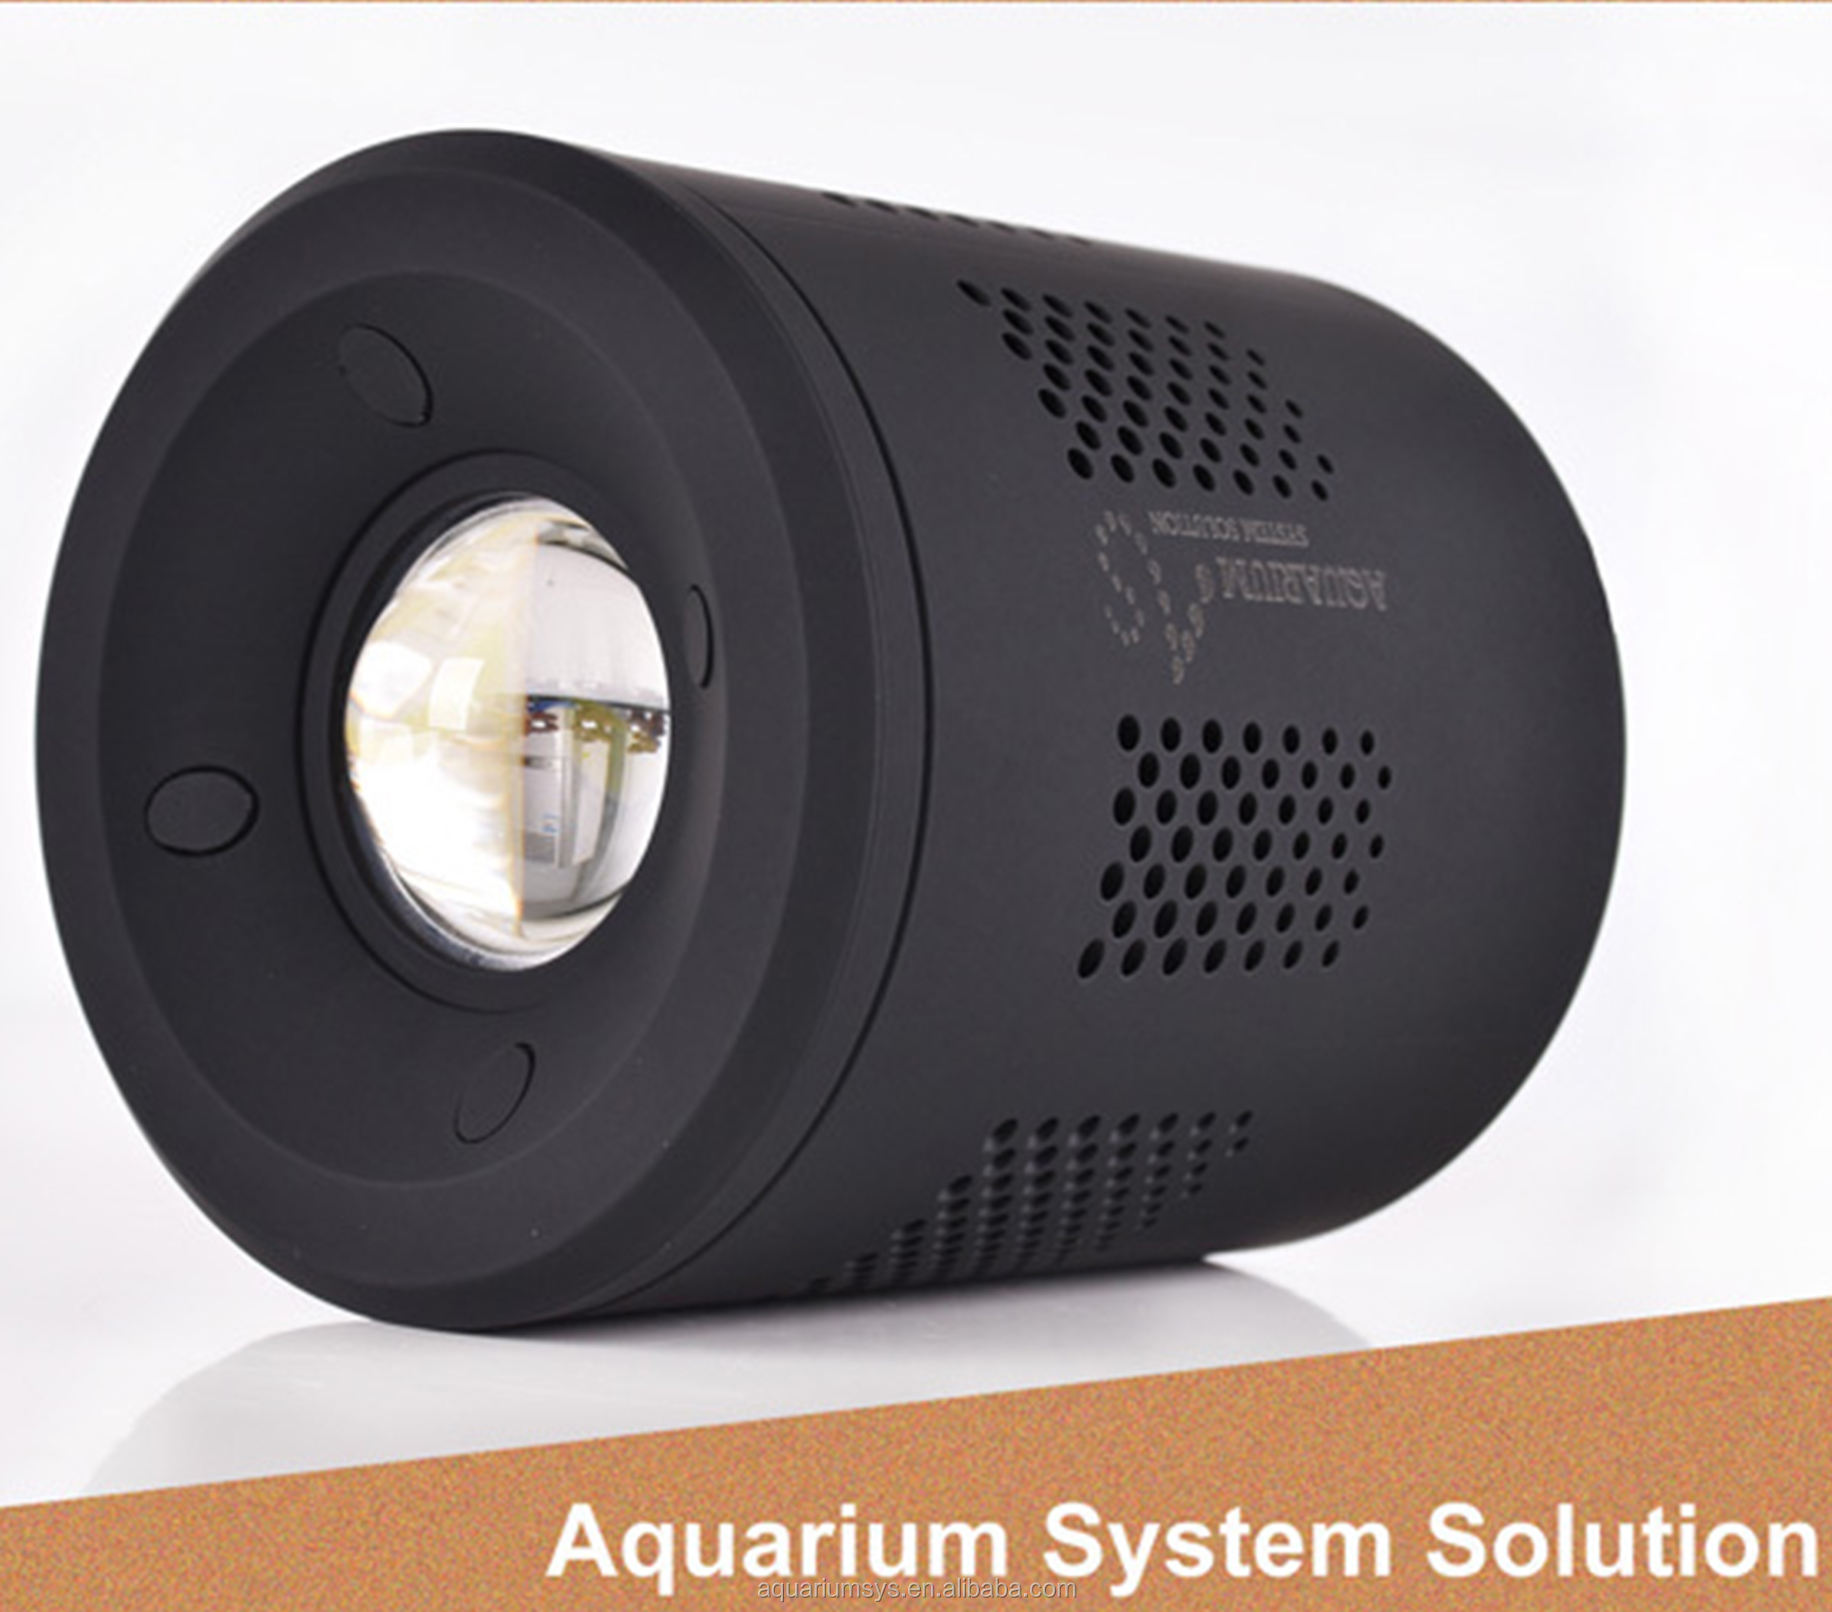 ASML-02, 70W.S. Satellite Series Aquarium LED LightingปะการังReef LED Light